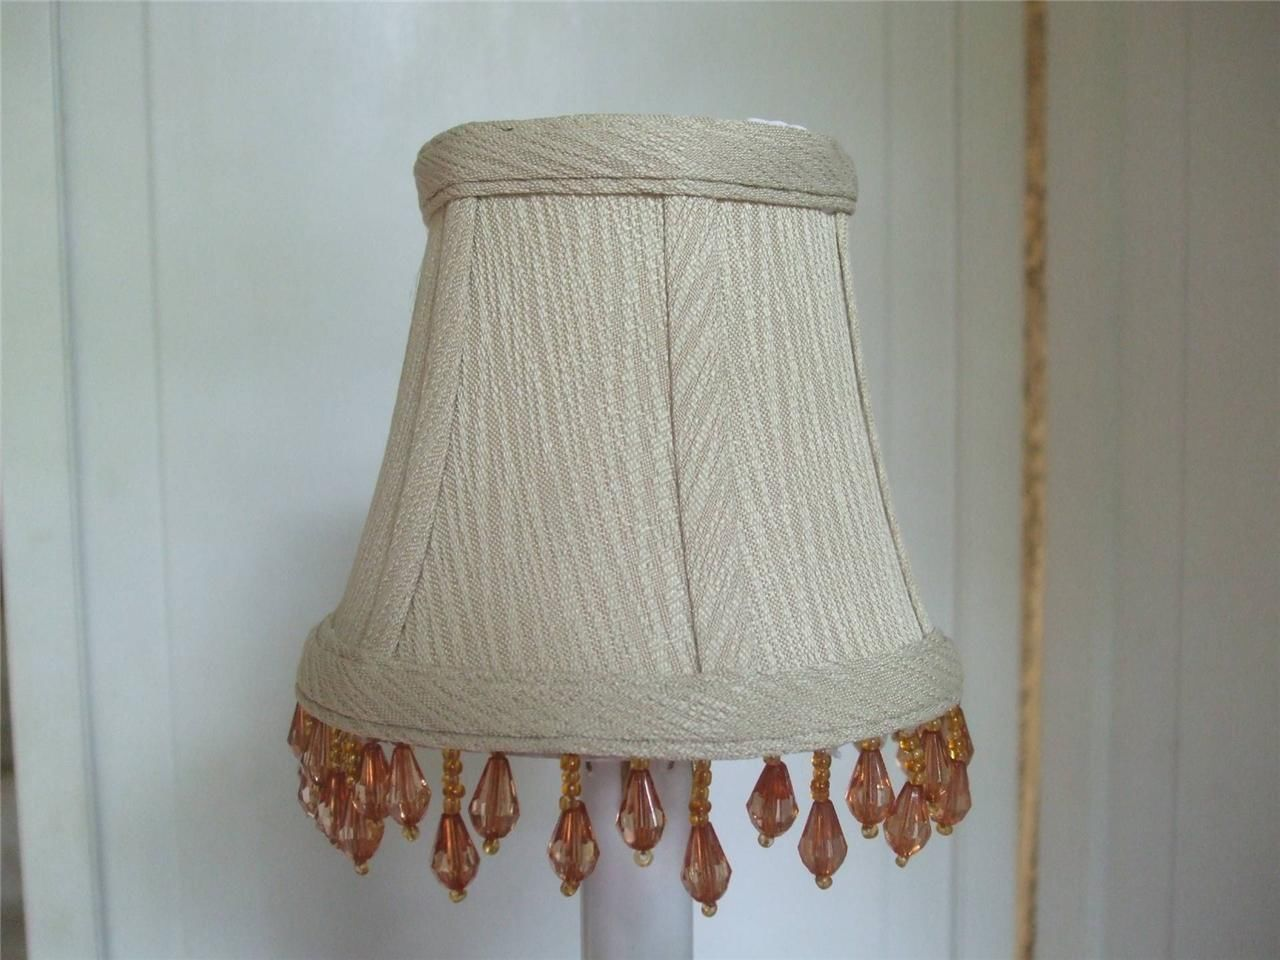 chandelier lamp sconce clip on mini beaded shade beige color textured. Black Bedroom Furniture Sets. Home Design Ideas